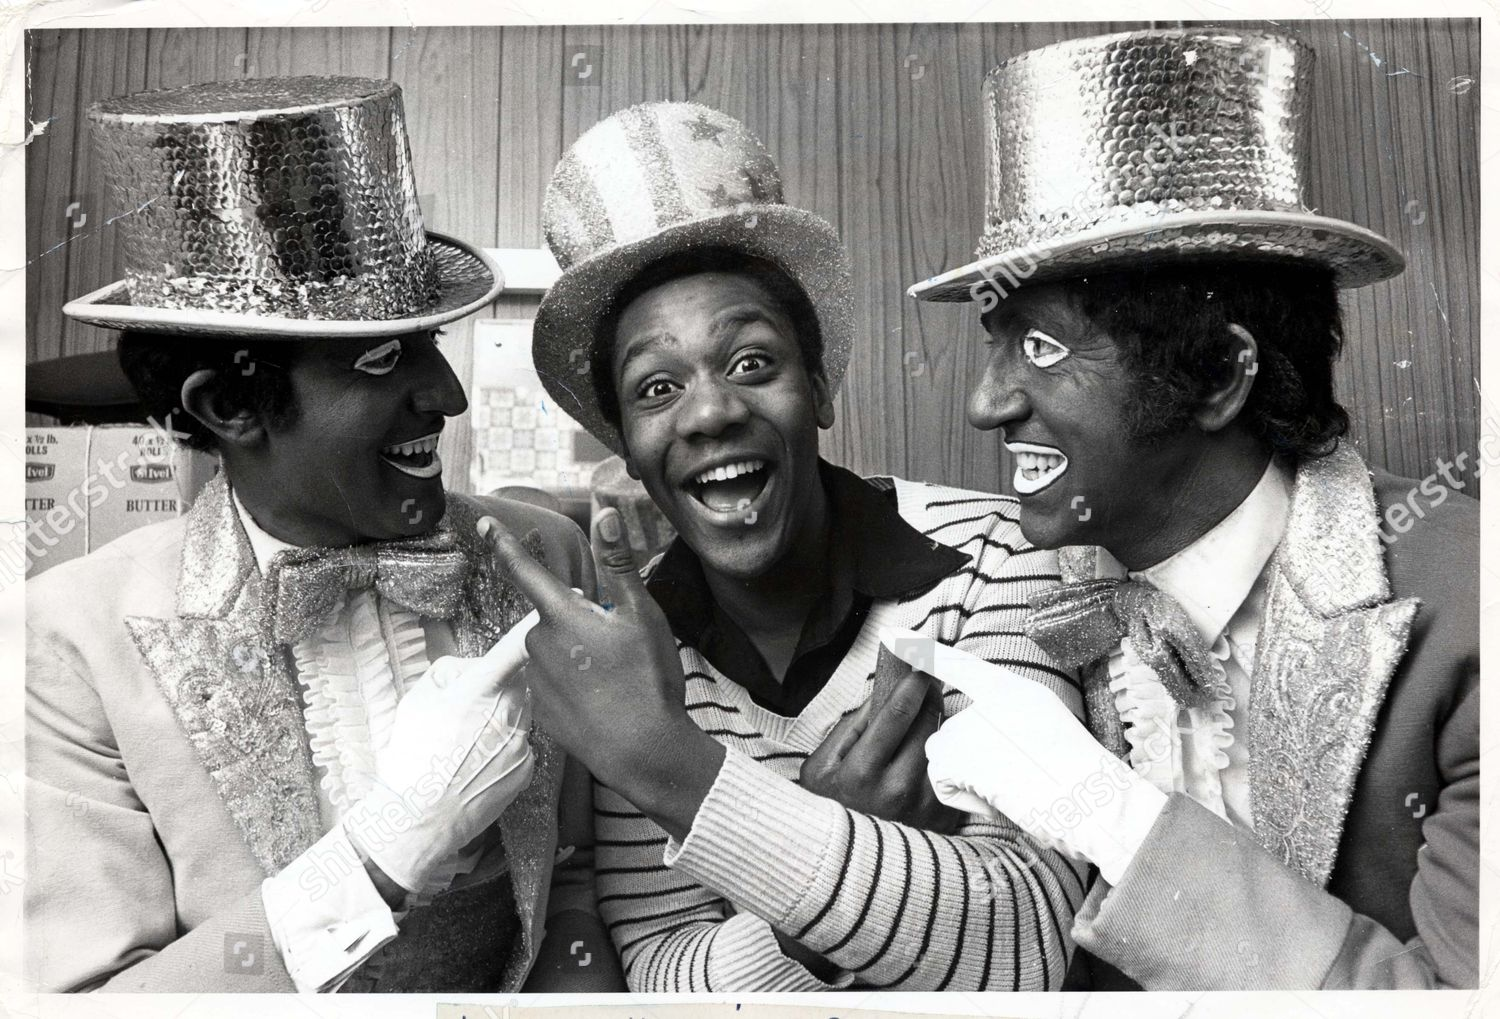 Comedian lenny henry in the black and white minstrel show